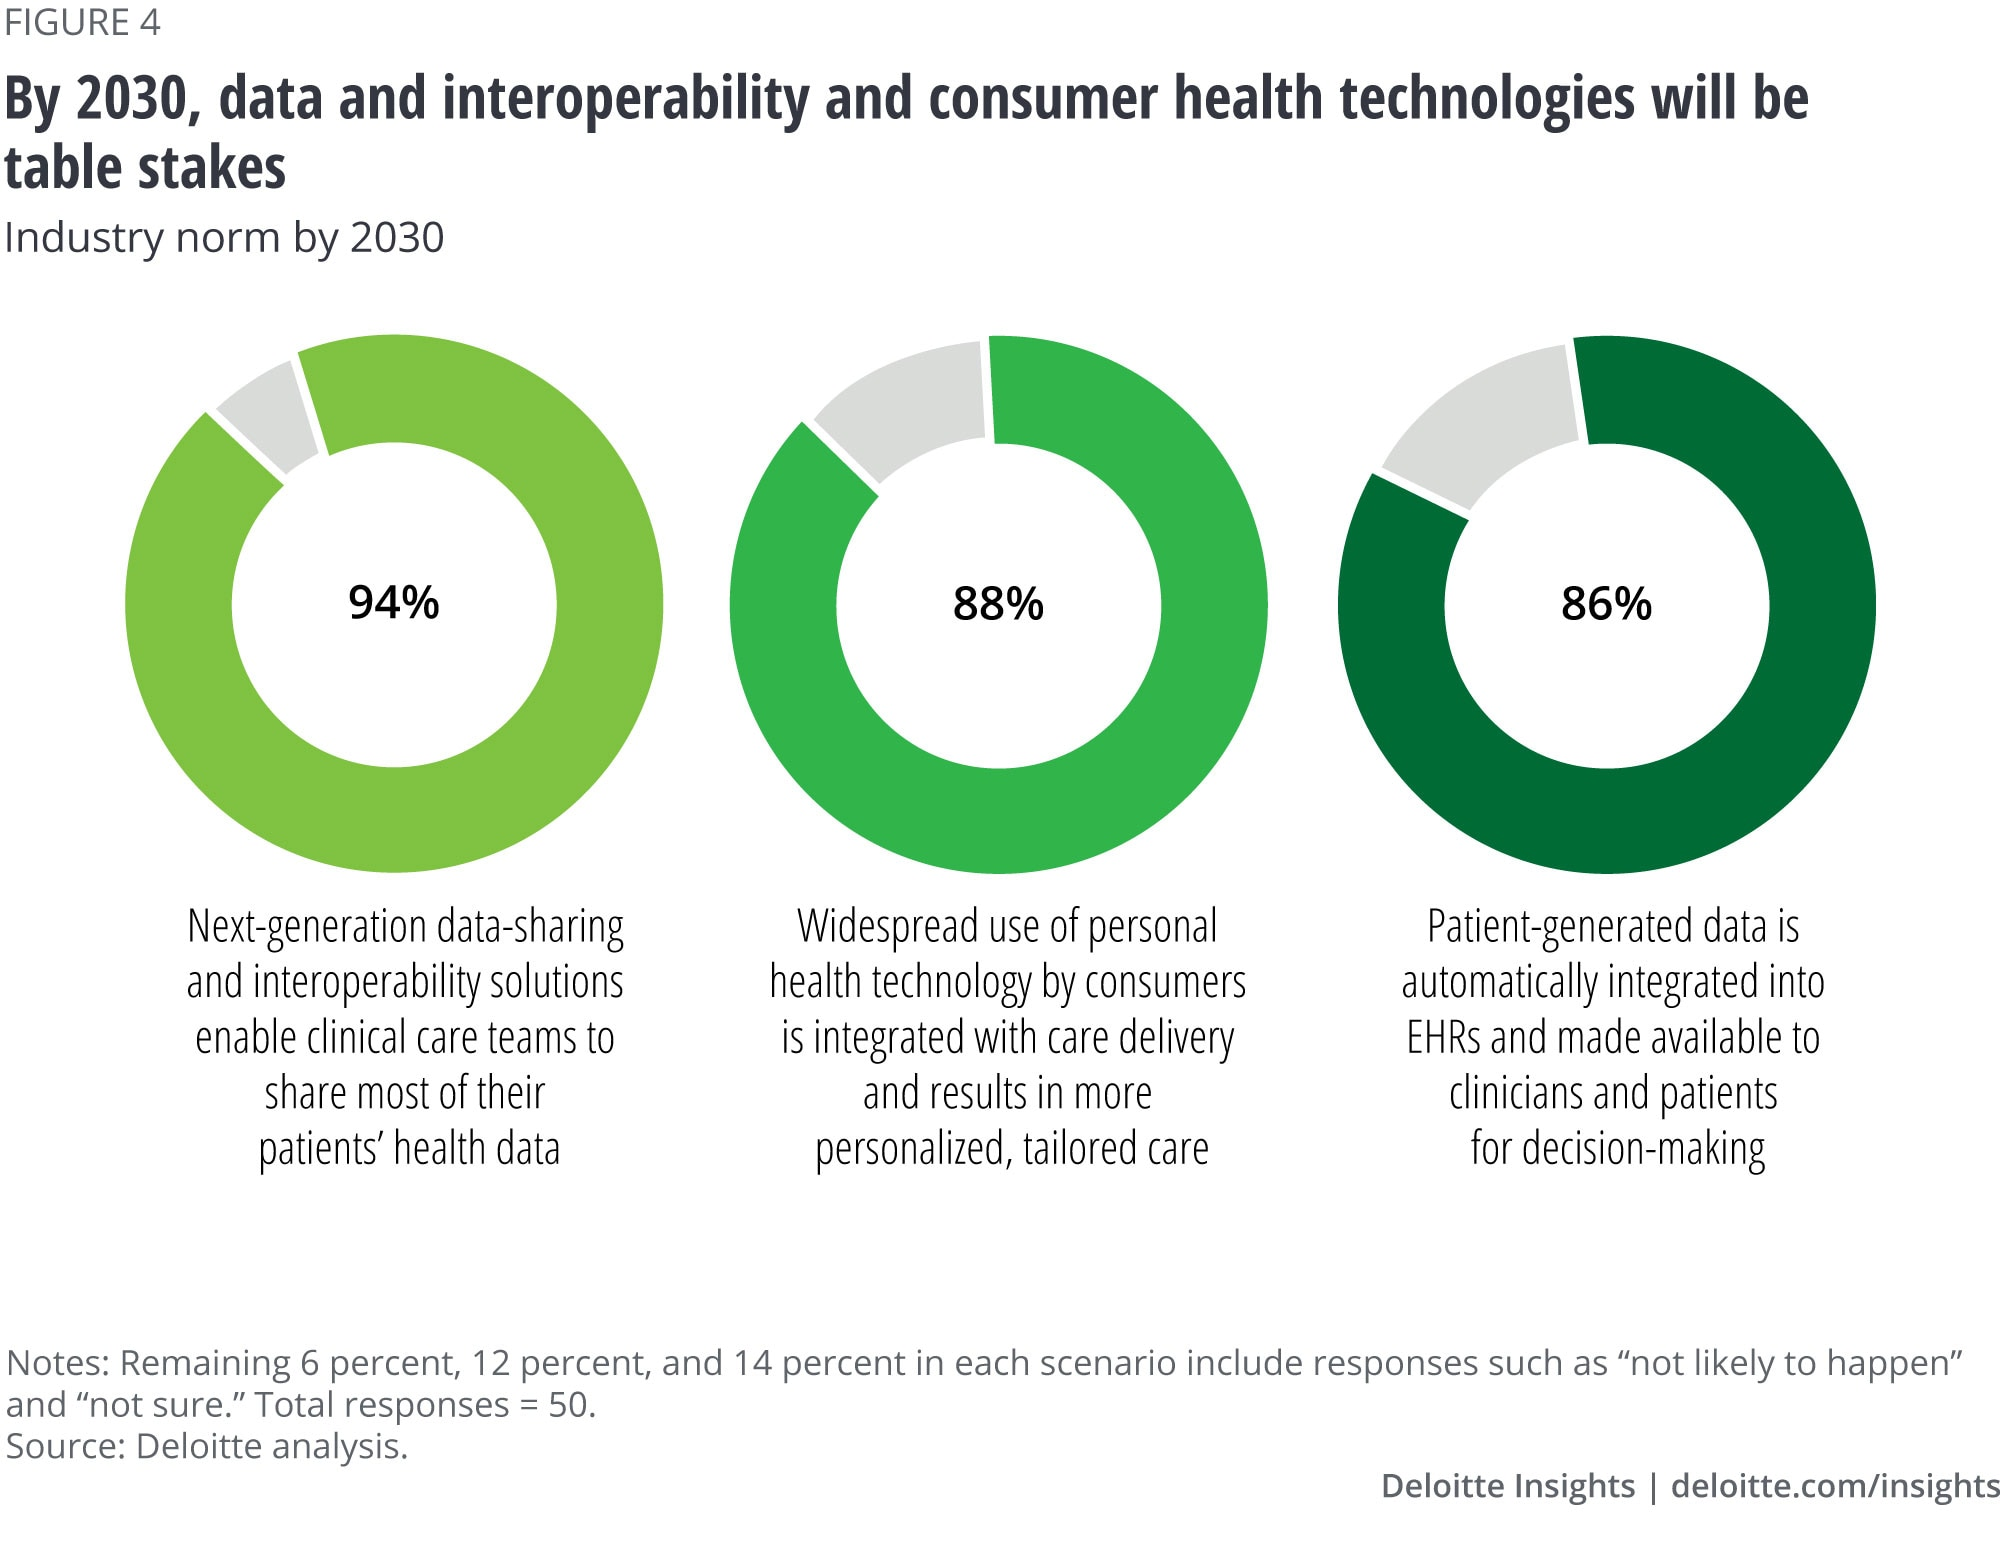 By 2030, data, interoperability, and consumer health technology will be table stakes